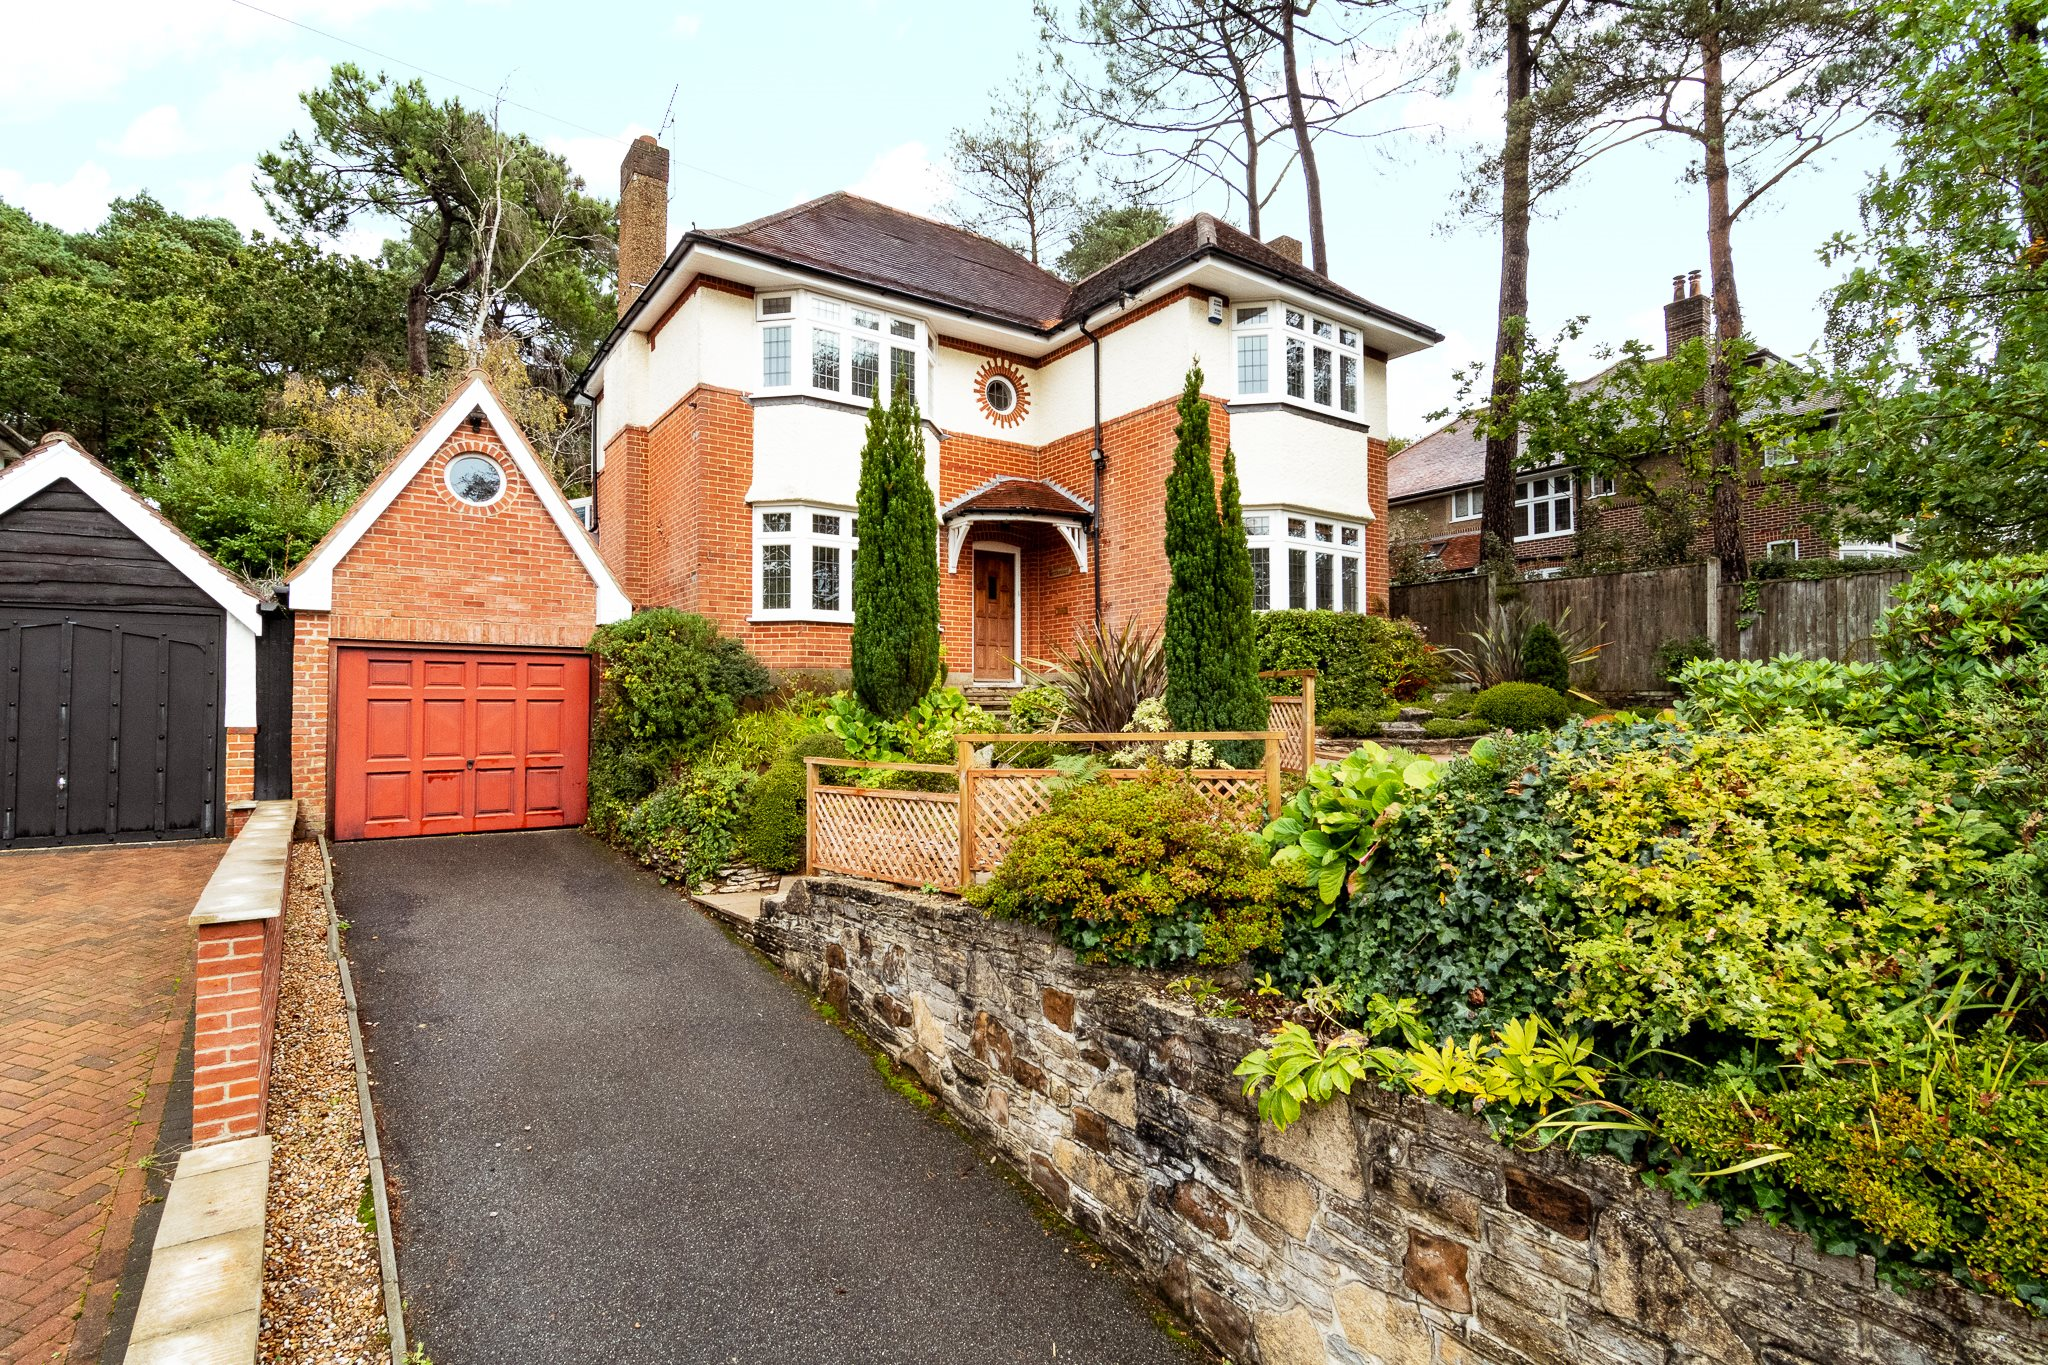 4 bed house to rent in Talbot Woods, Bournemouth, BH4